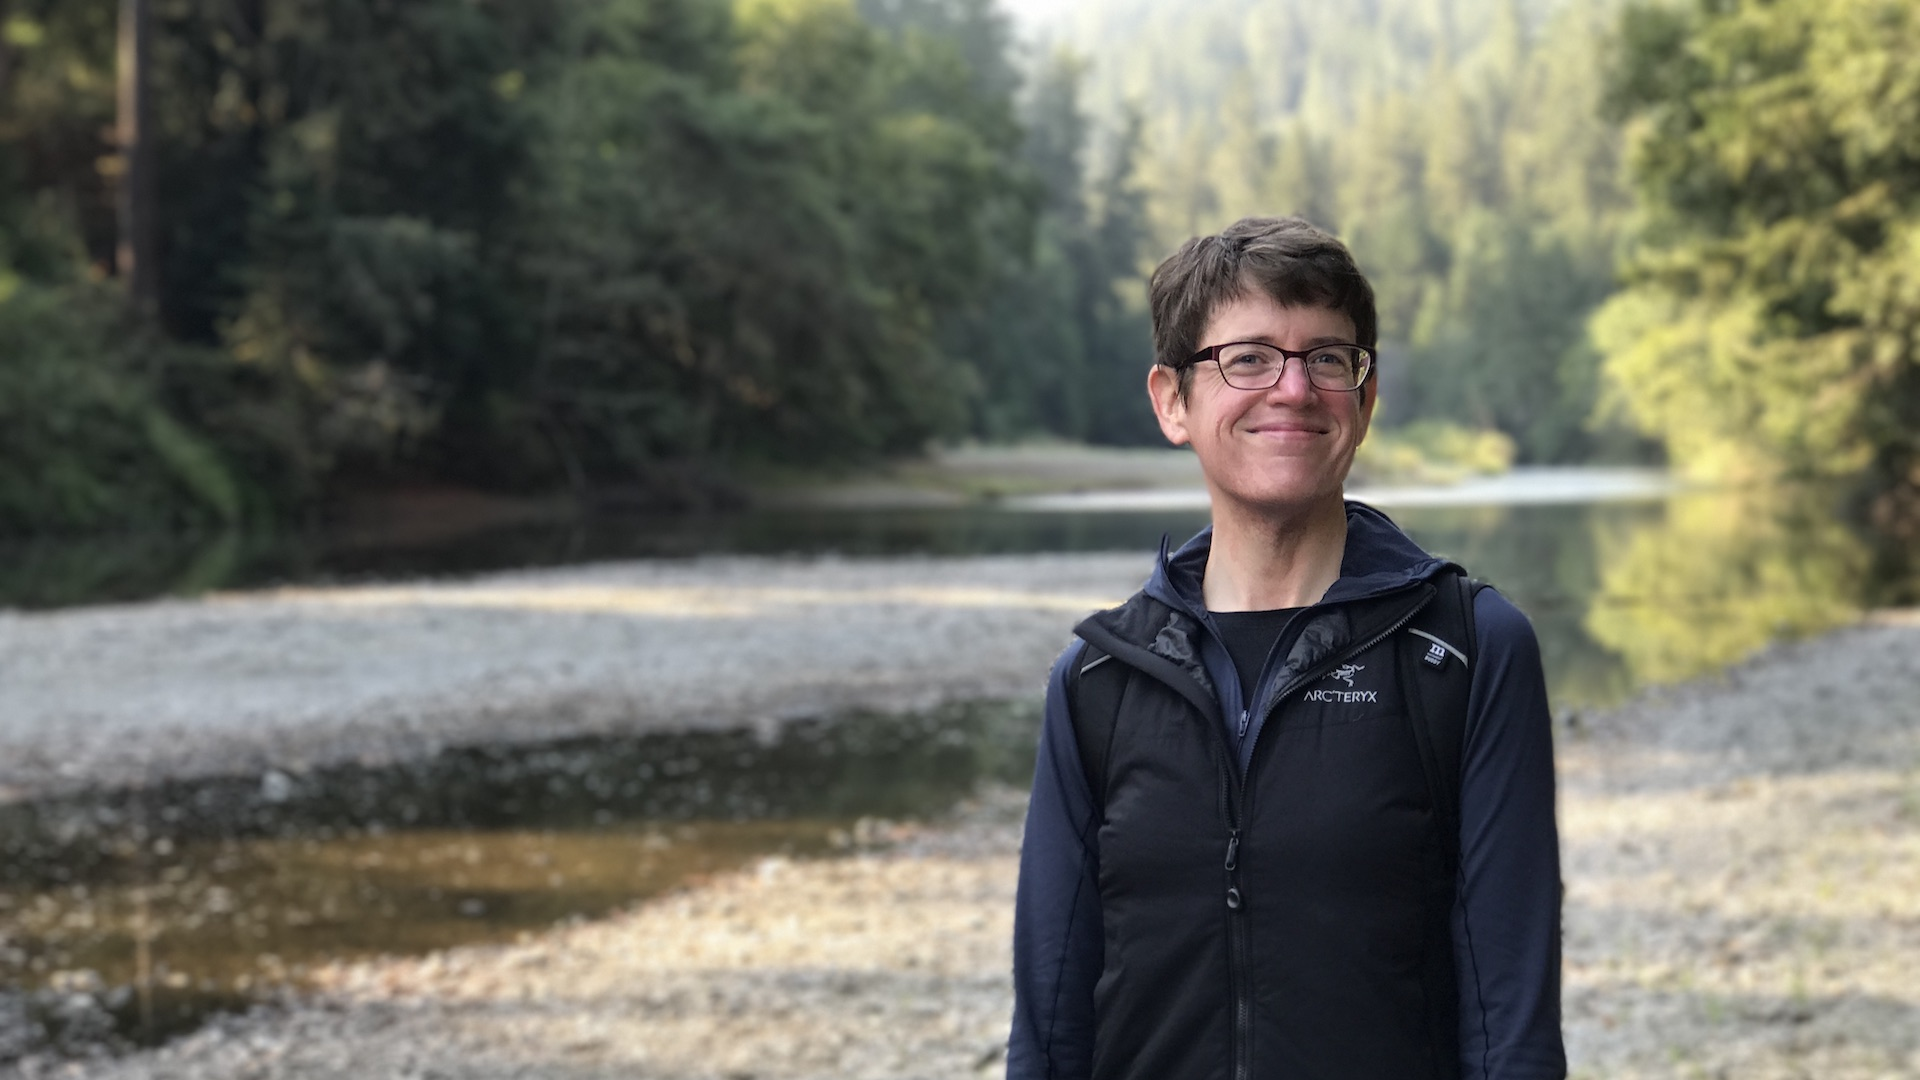 Kim Goodwin is standing beside a river wth trees in the background